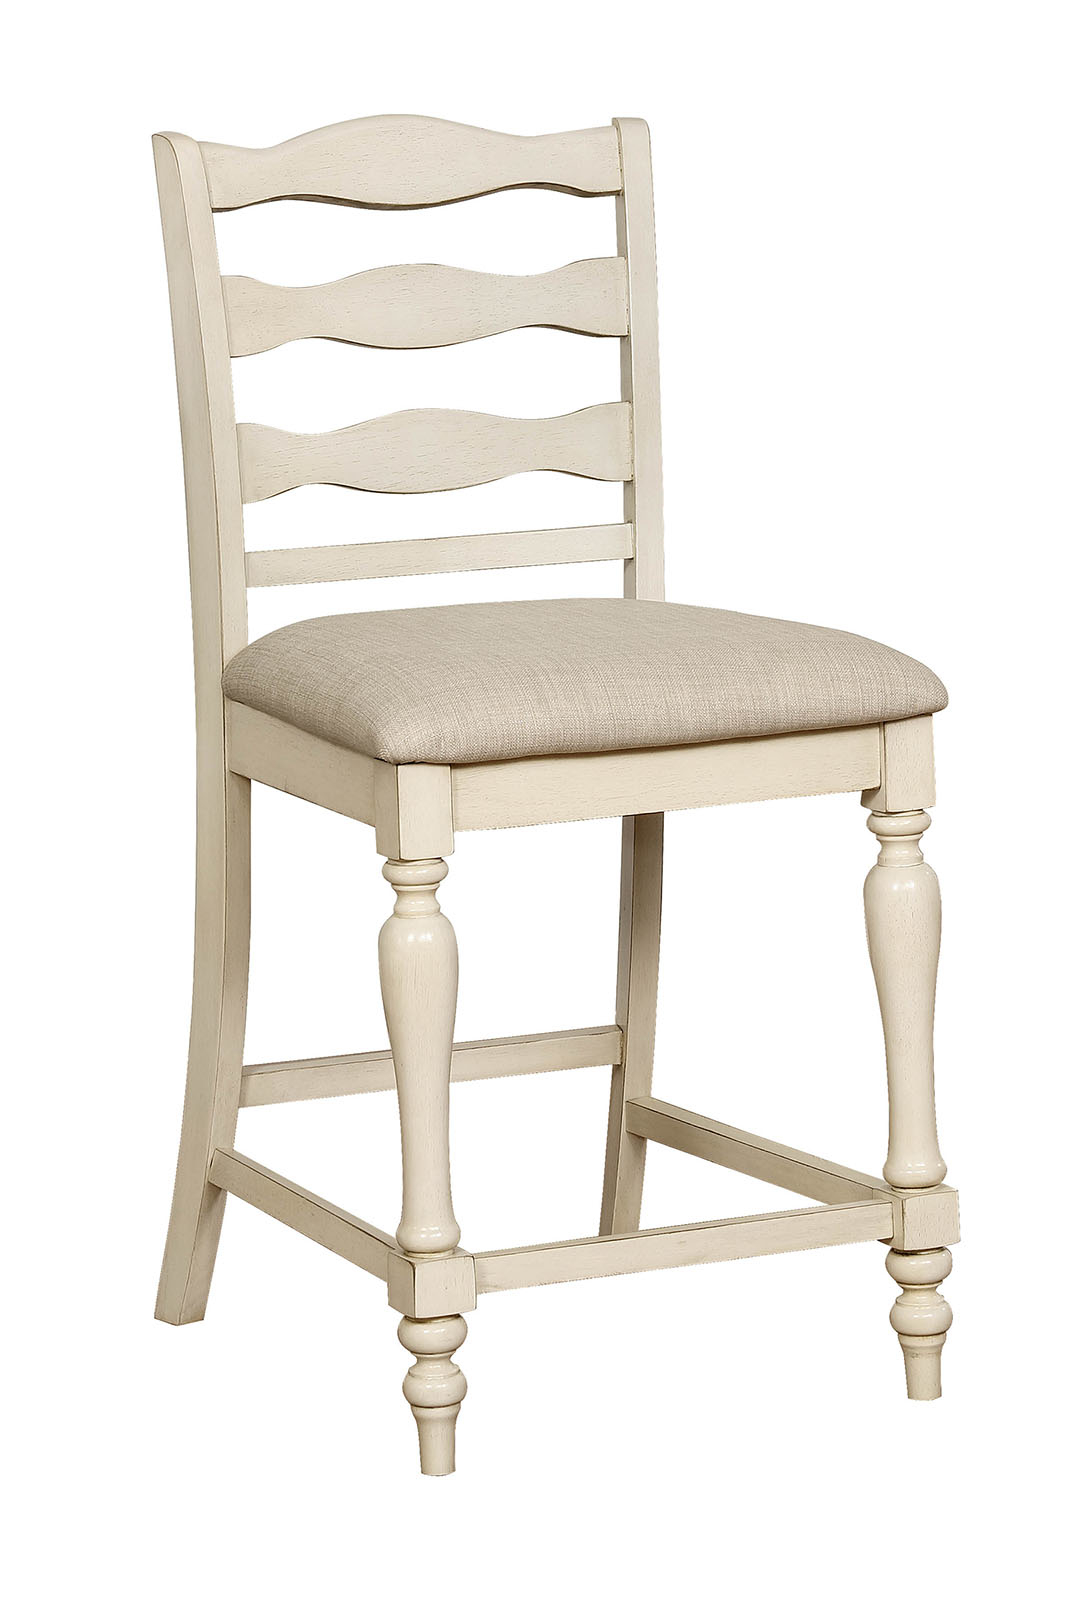 White Ladder Back Chair Fabric Upholstered Wooden Counter Height Chair With Ladder